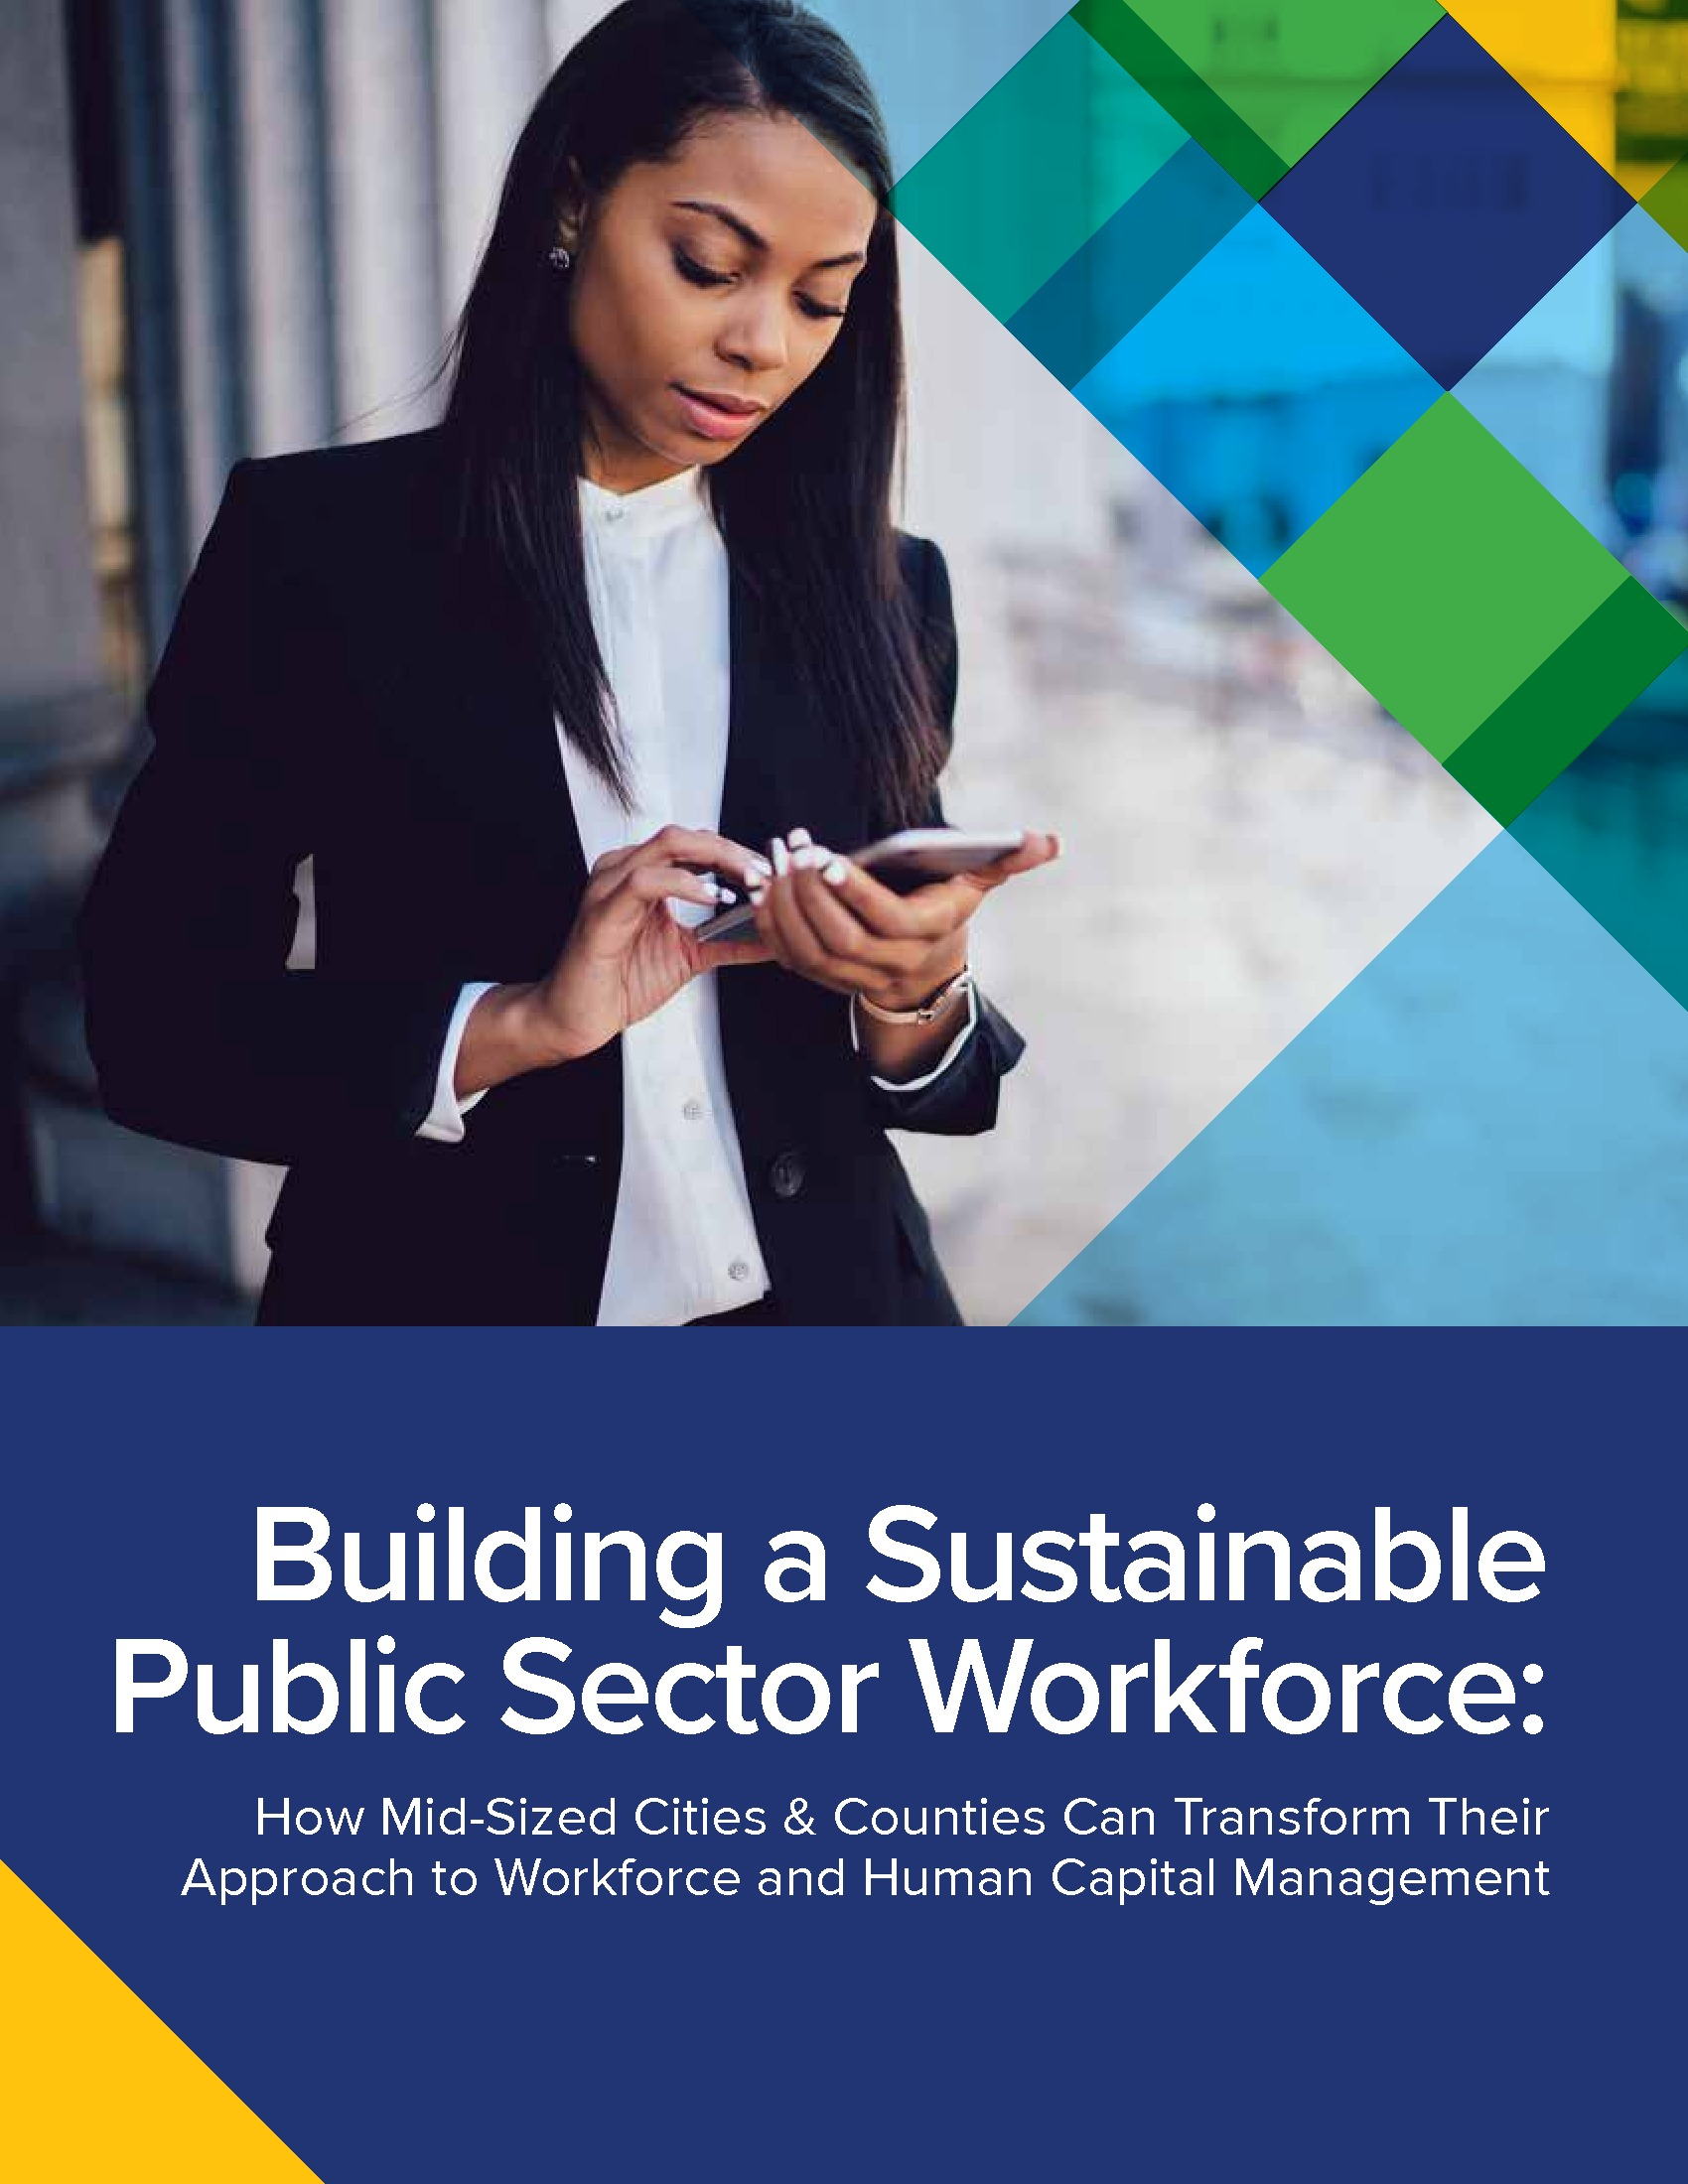 Building a Sustainable Public Sector Workforce